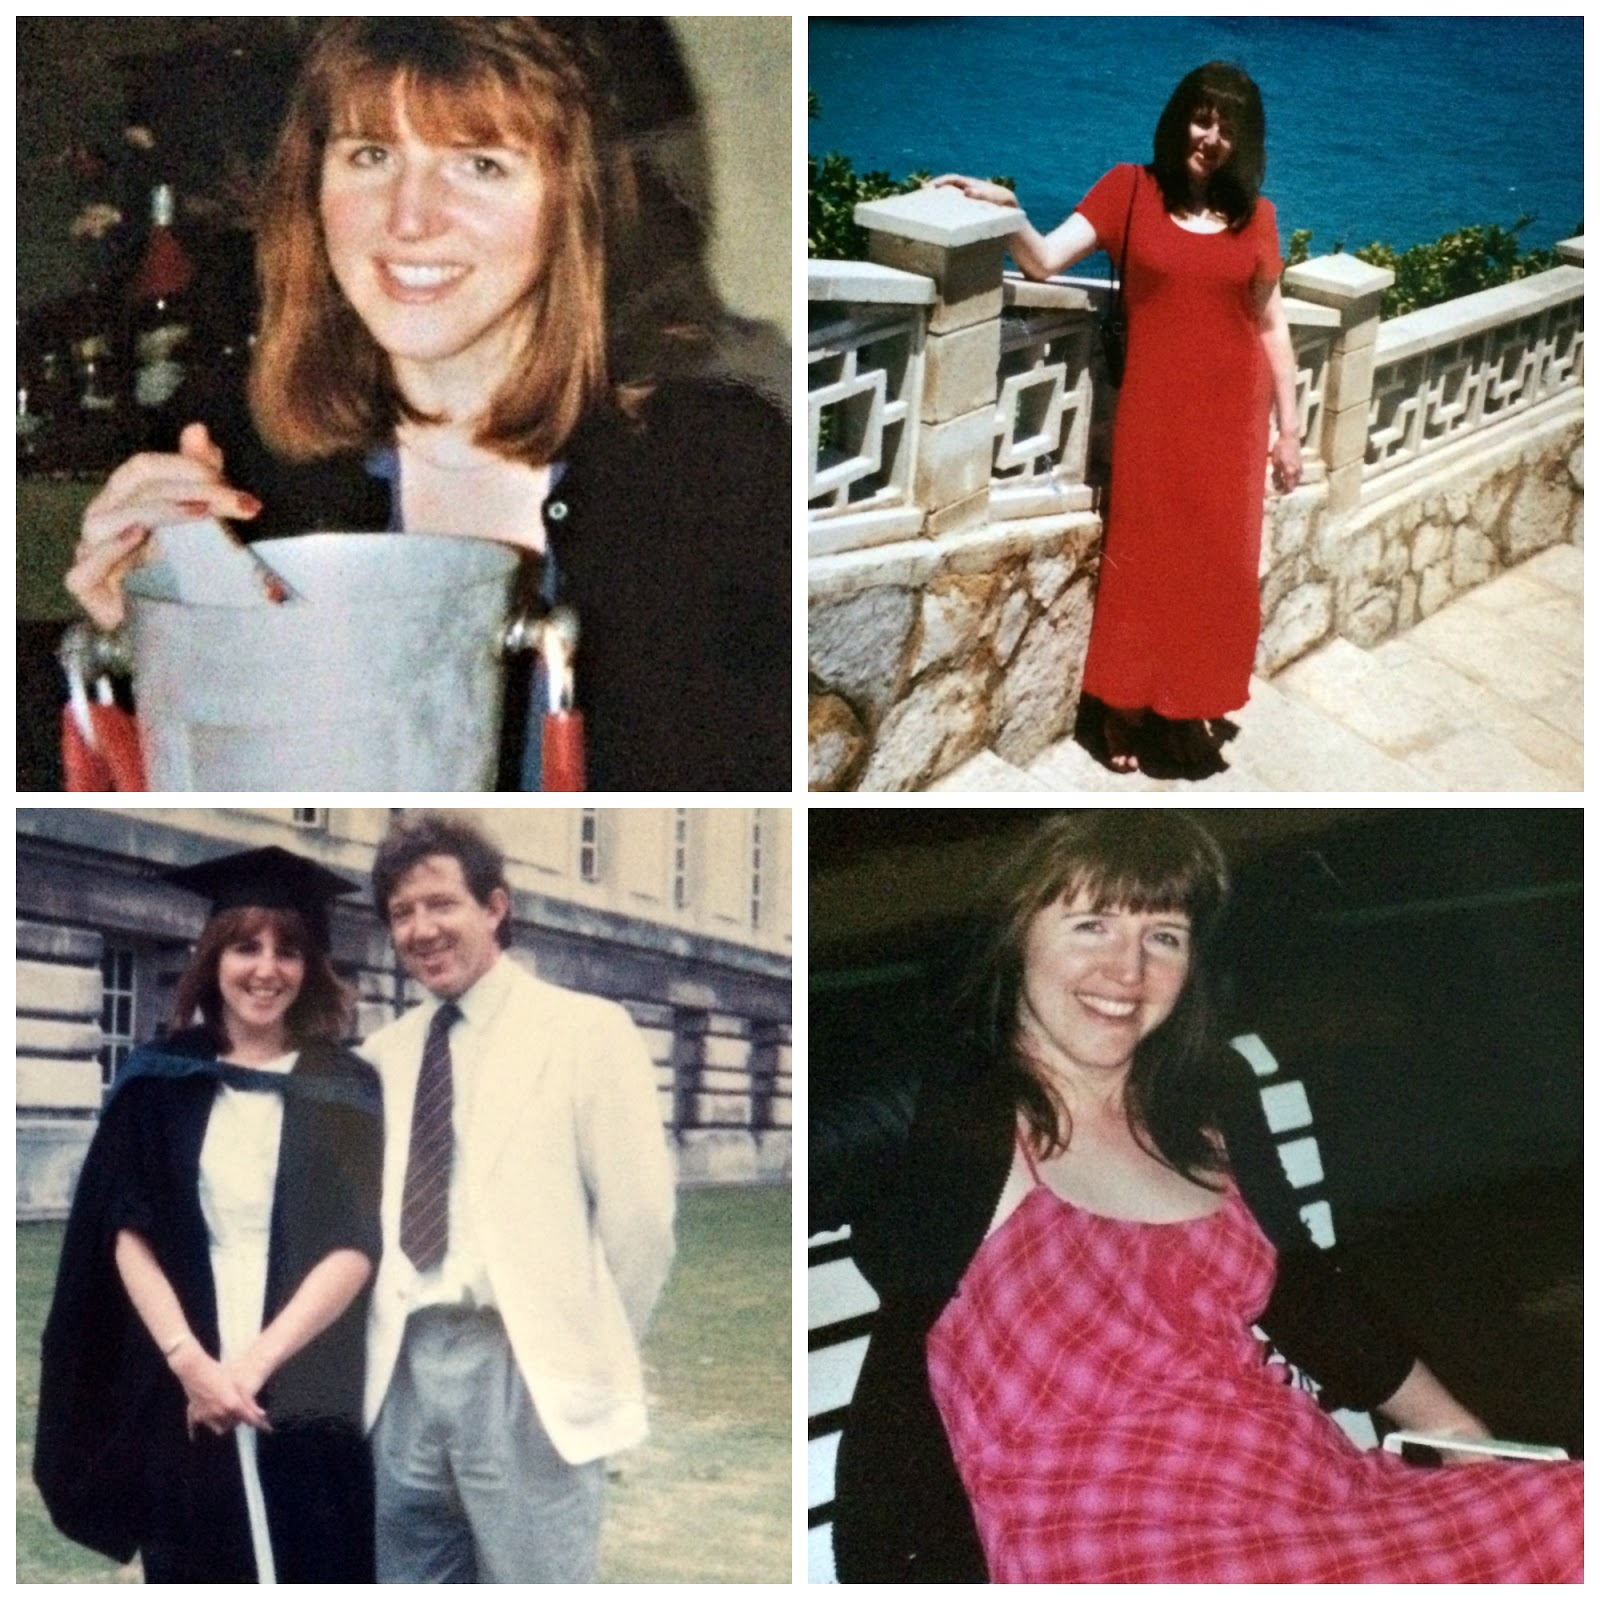 Collage of photos of Linda Hobbis